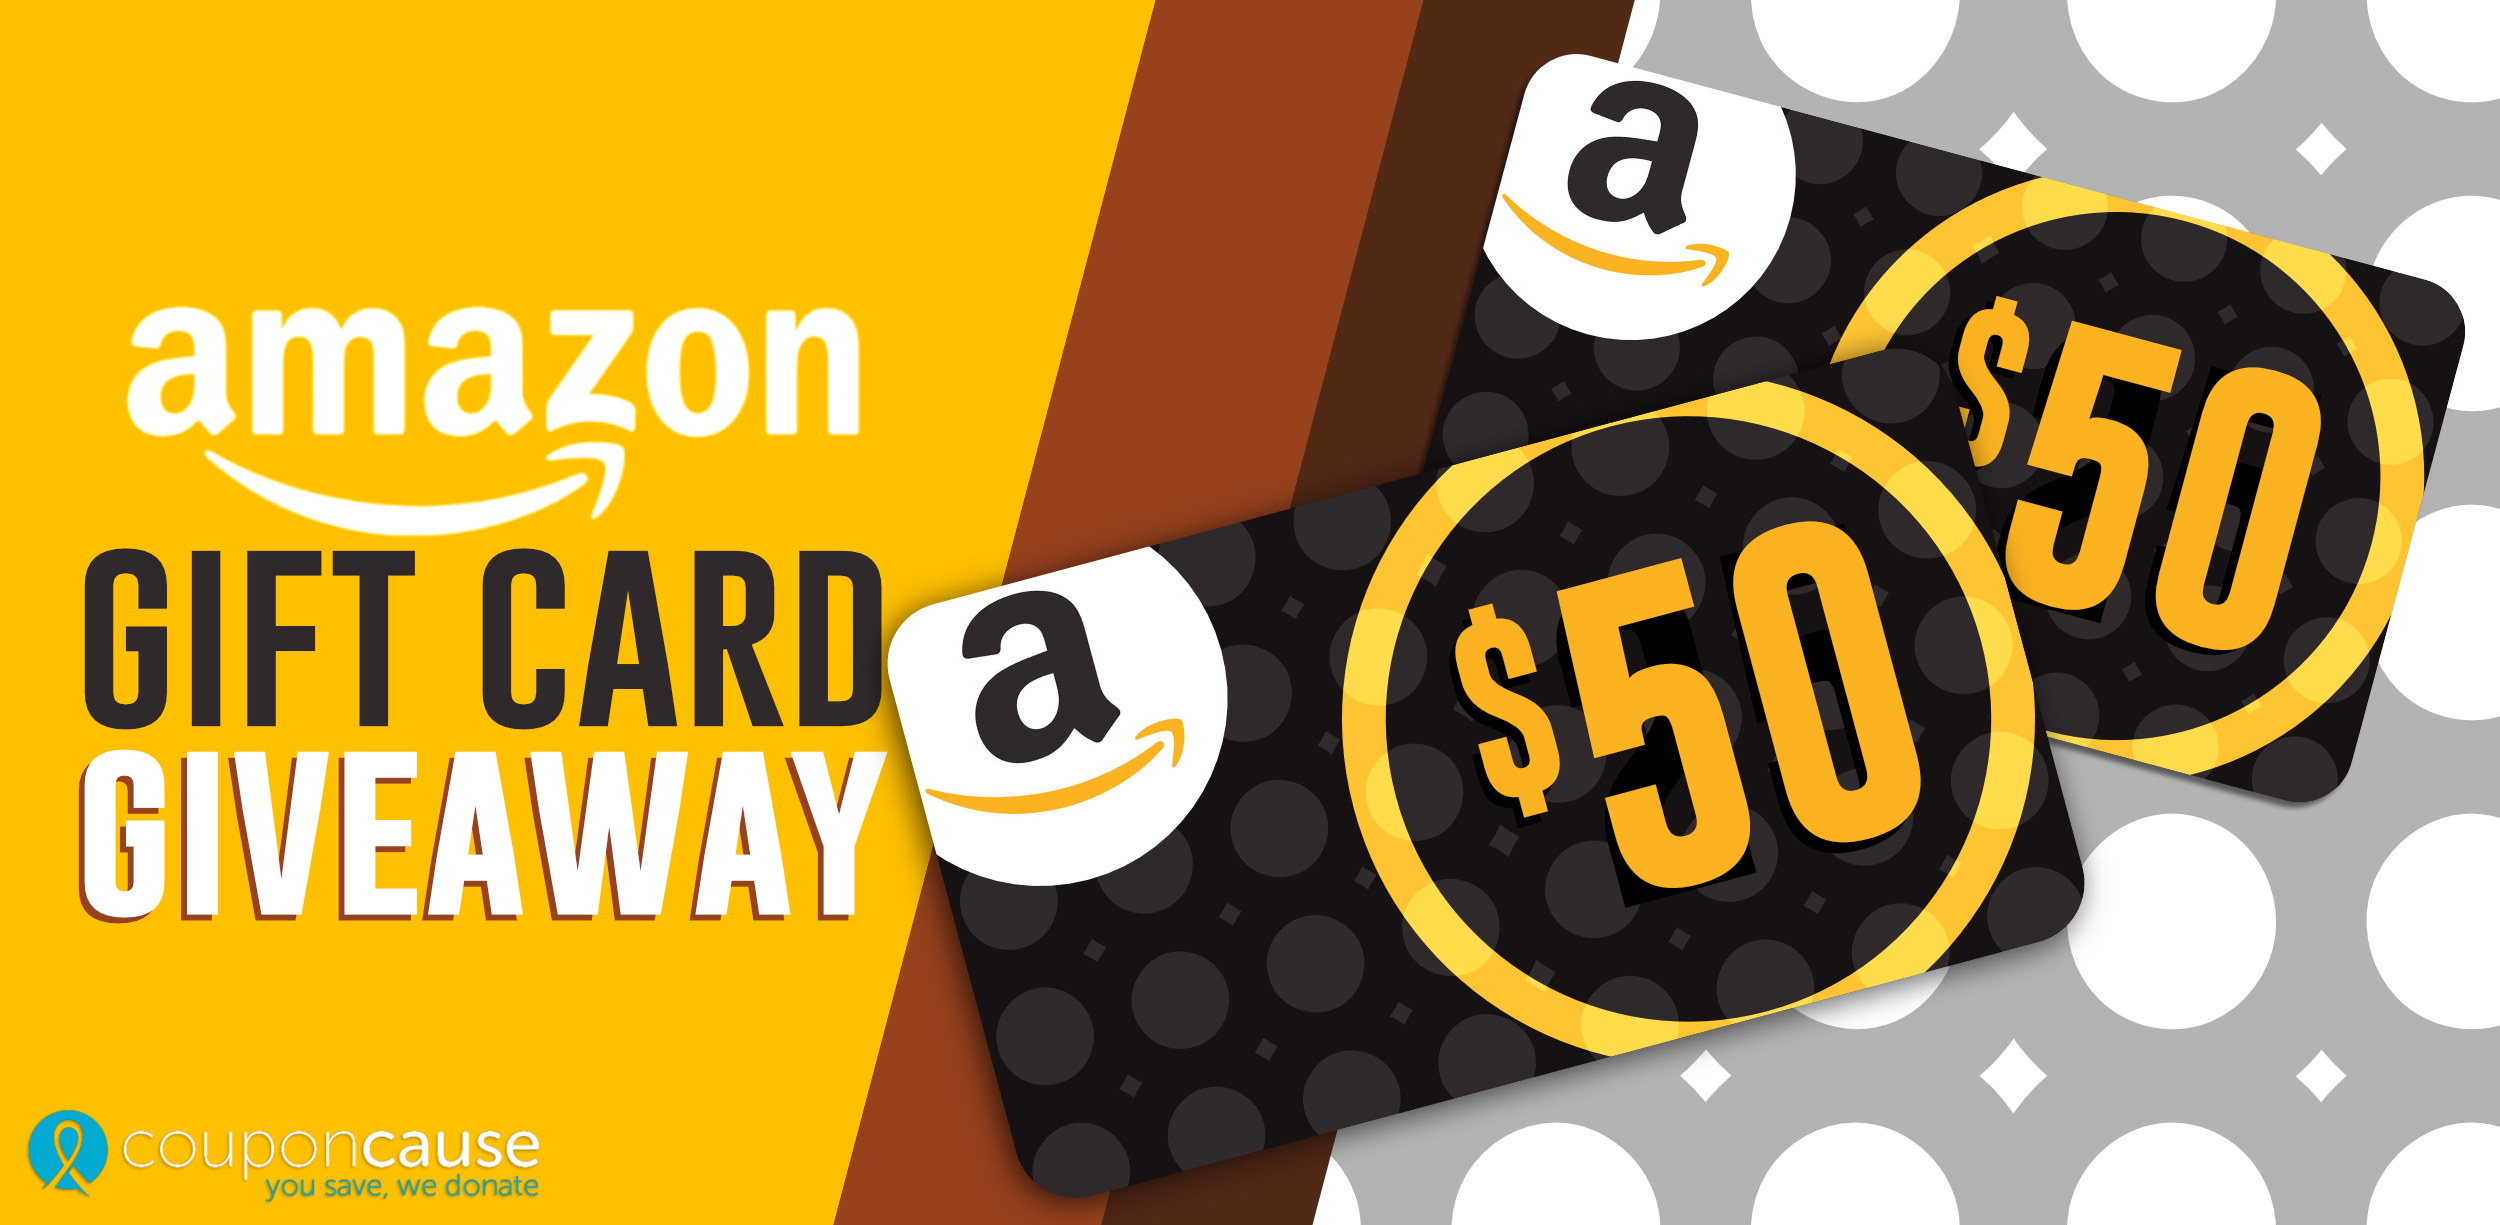 Amazon Gift Card Giveaway for Friends of CouponCause